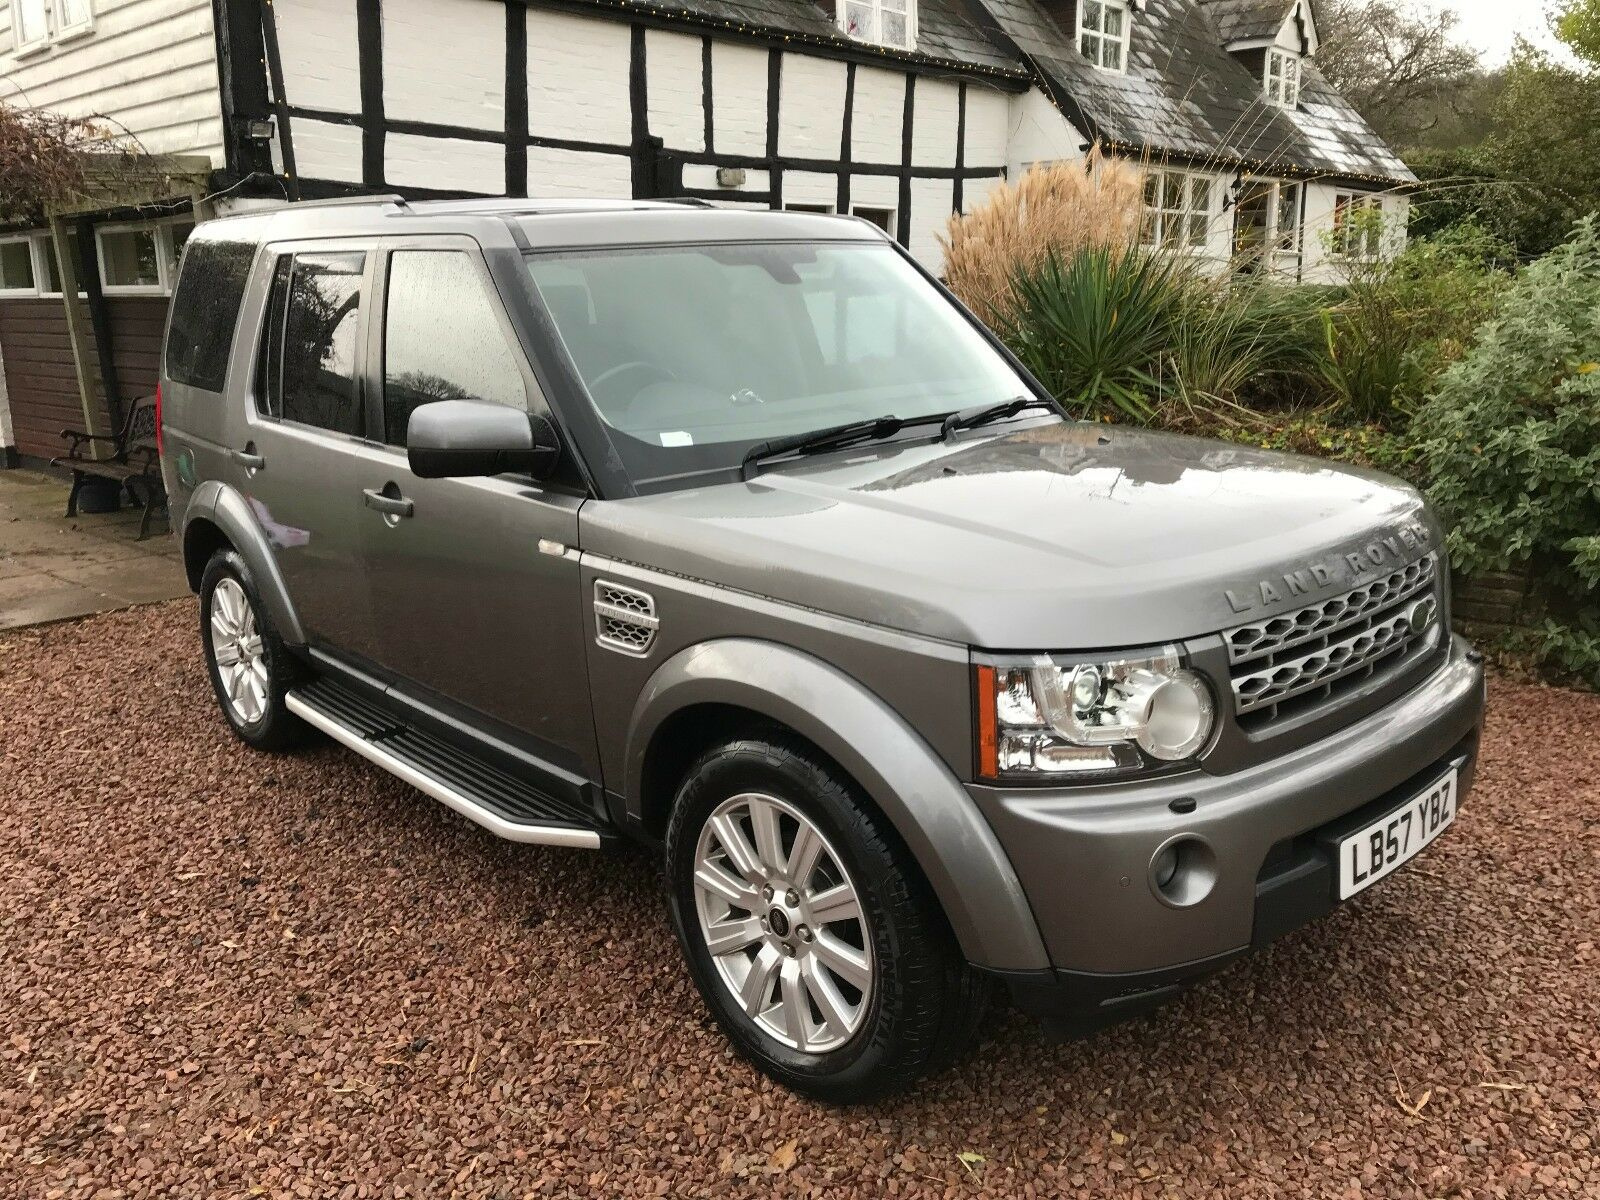 land rover discovery 3 2 7 tdv6 se 2008 auto disco 4 upgrade 8 picclick uk. Black Bedroom Furniture Sets. Home Design Ideas